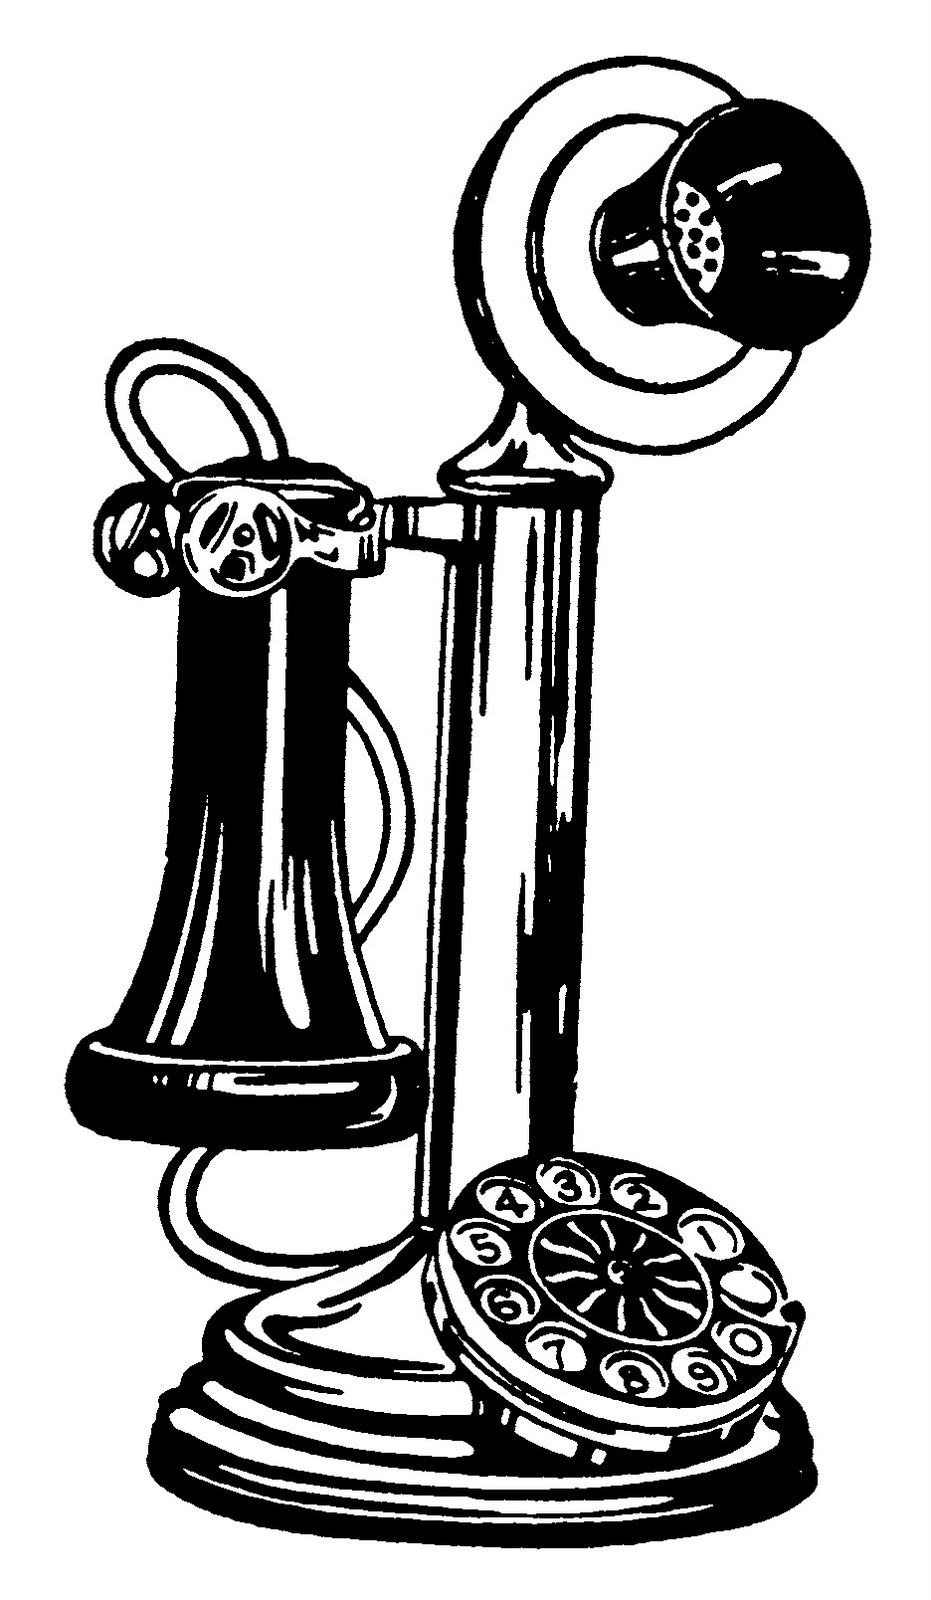 old-telephone-clipartvintagefeedsacks-free-vintage-clip-art-vintage-telephone-old-zjobn5vt